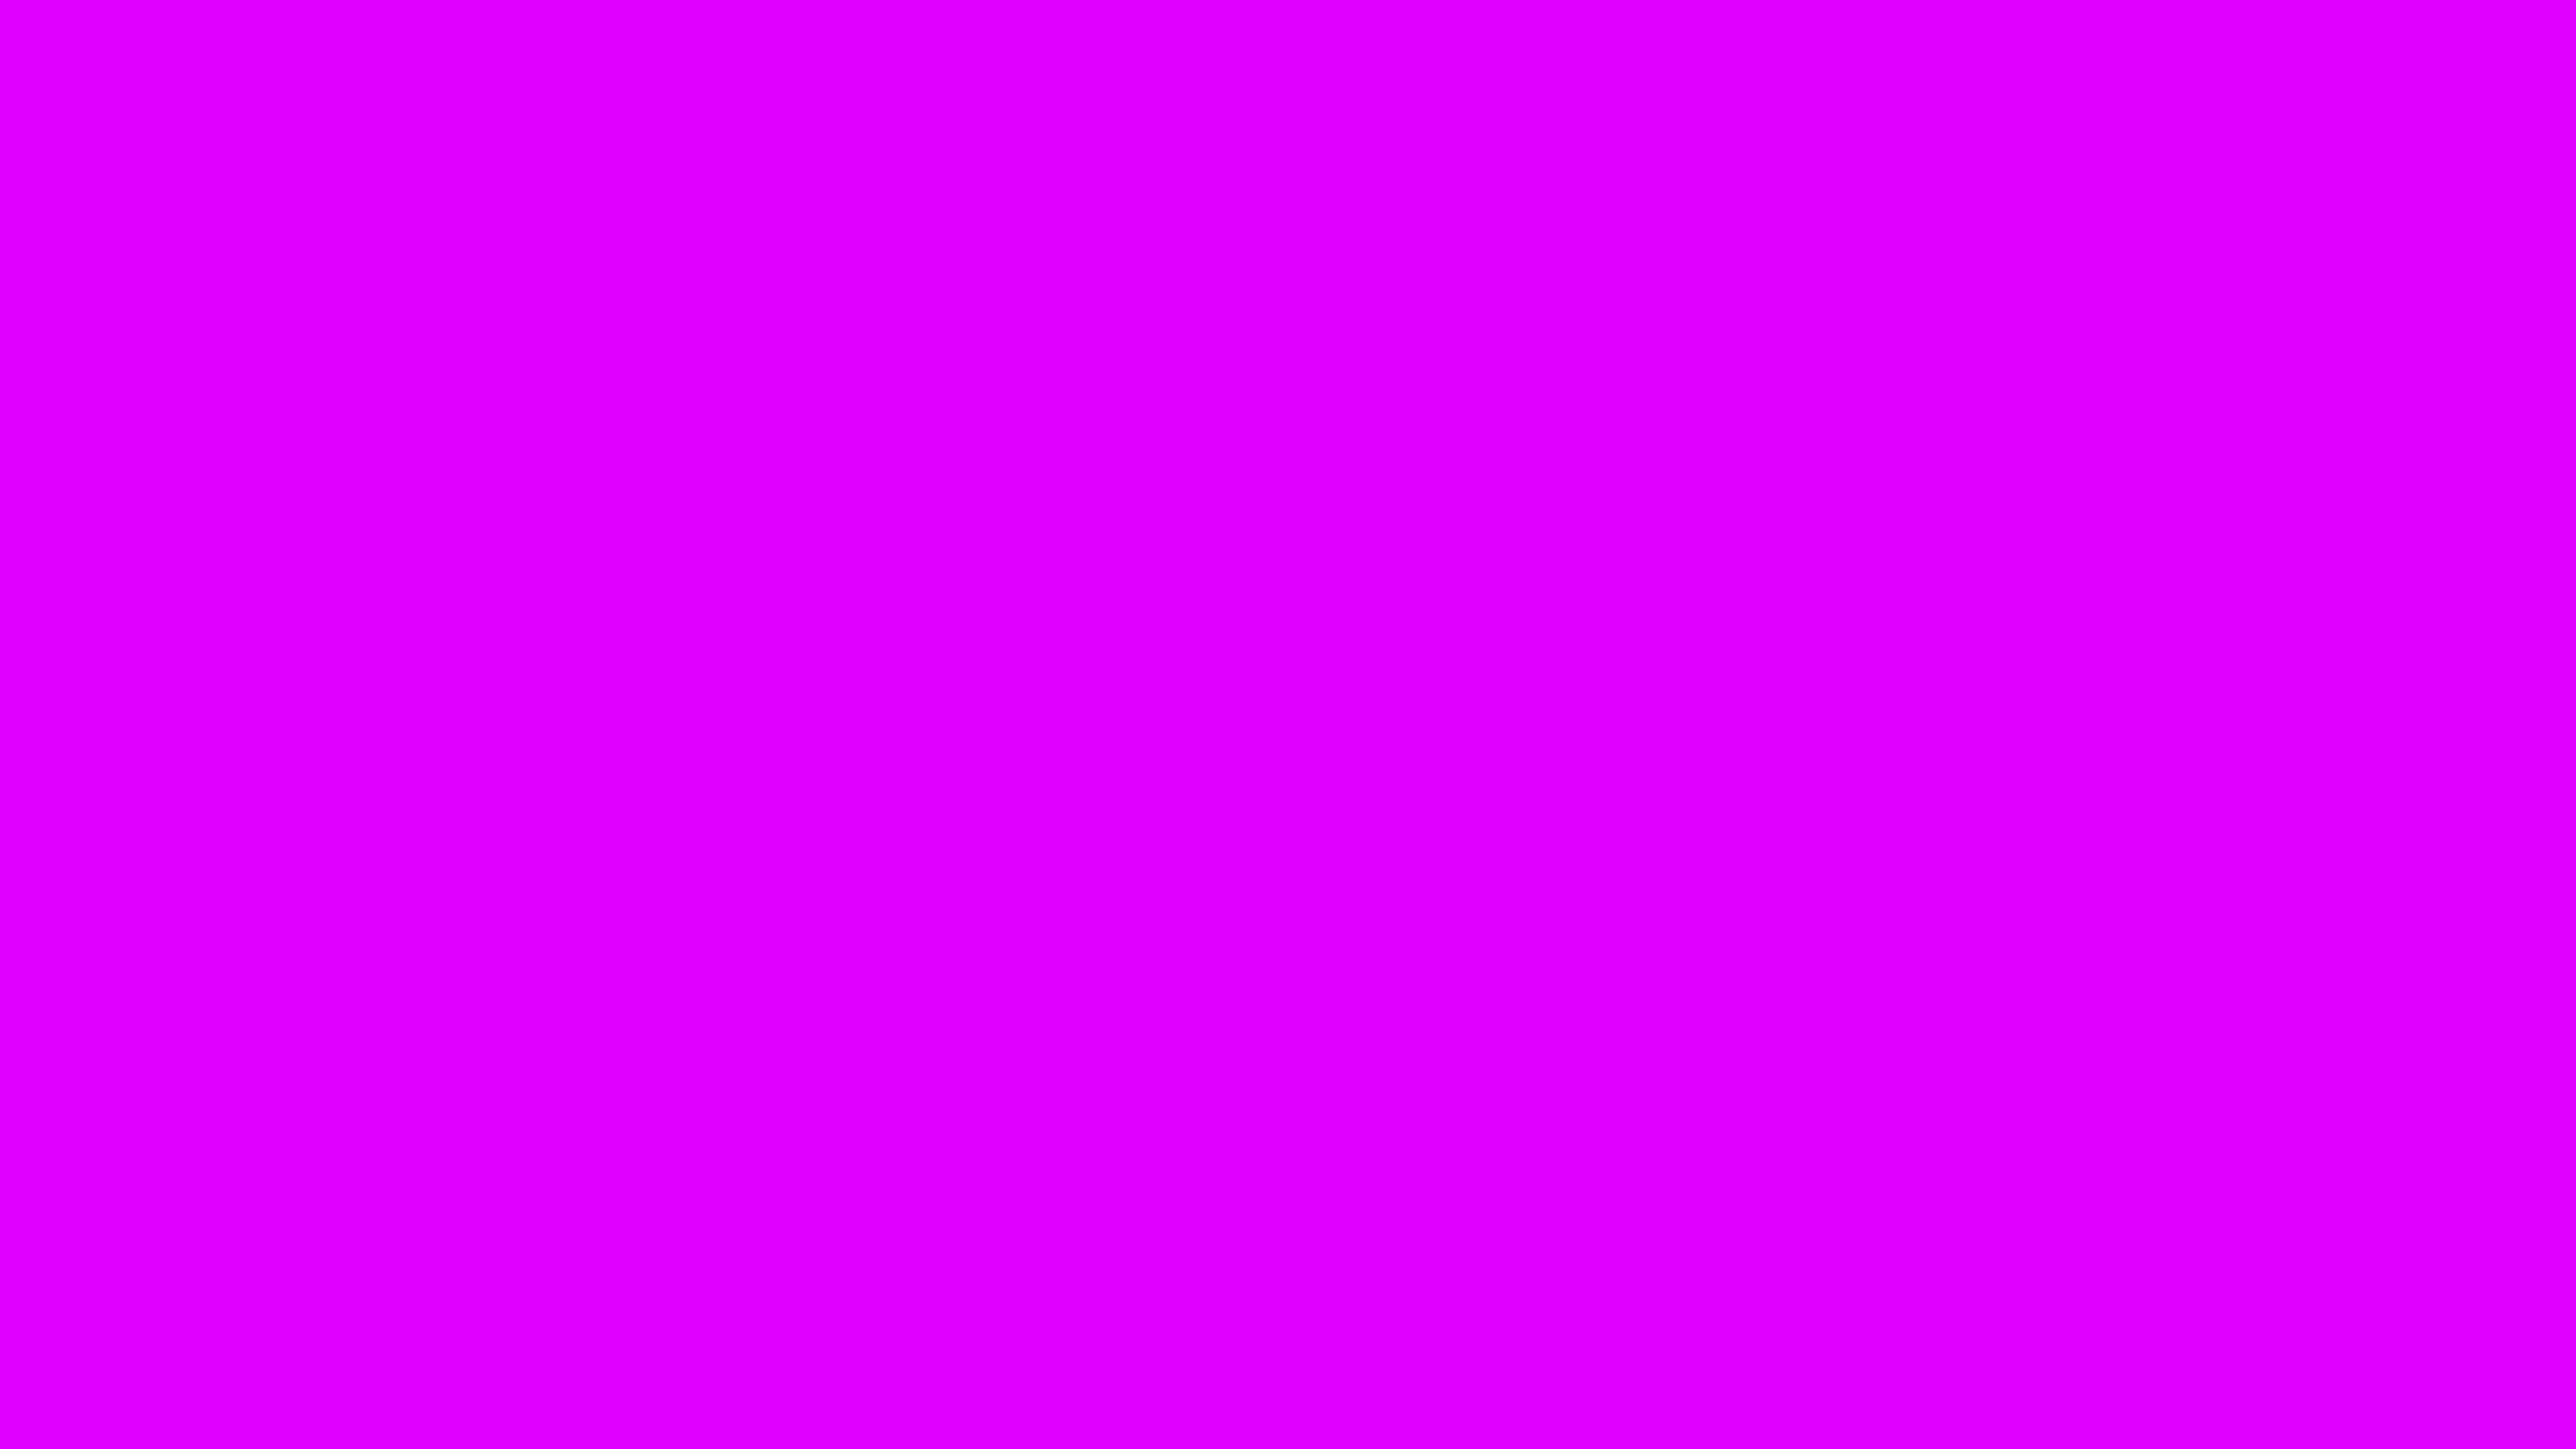 4096x2304 Phlox Solid Color Background